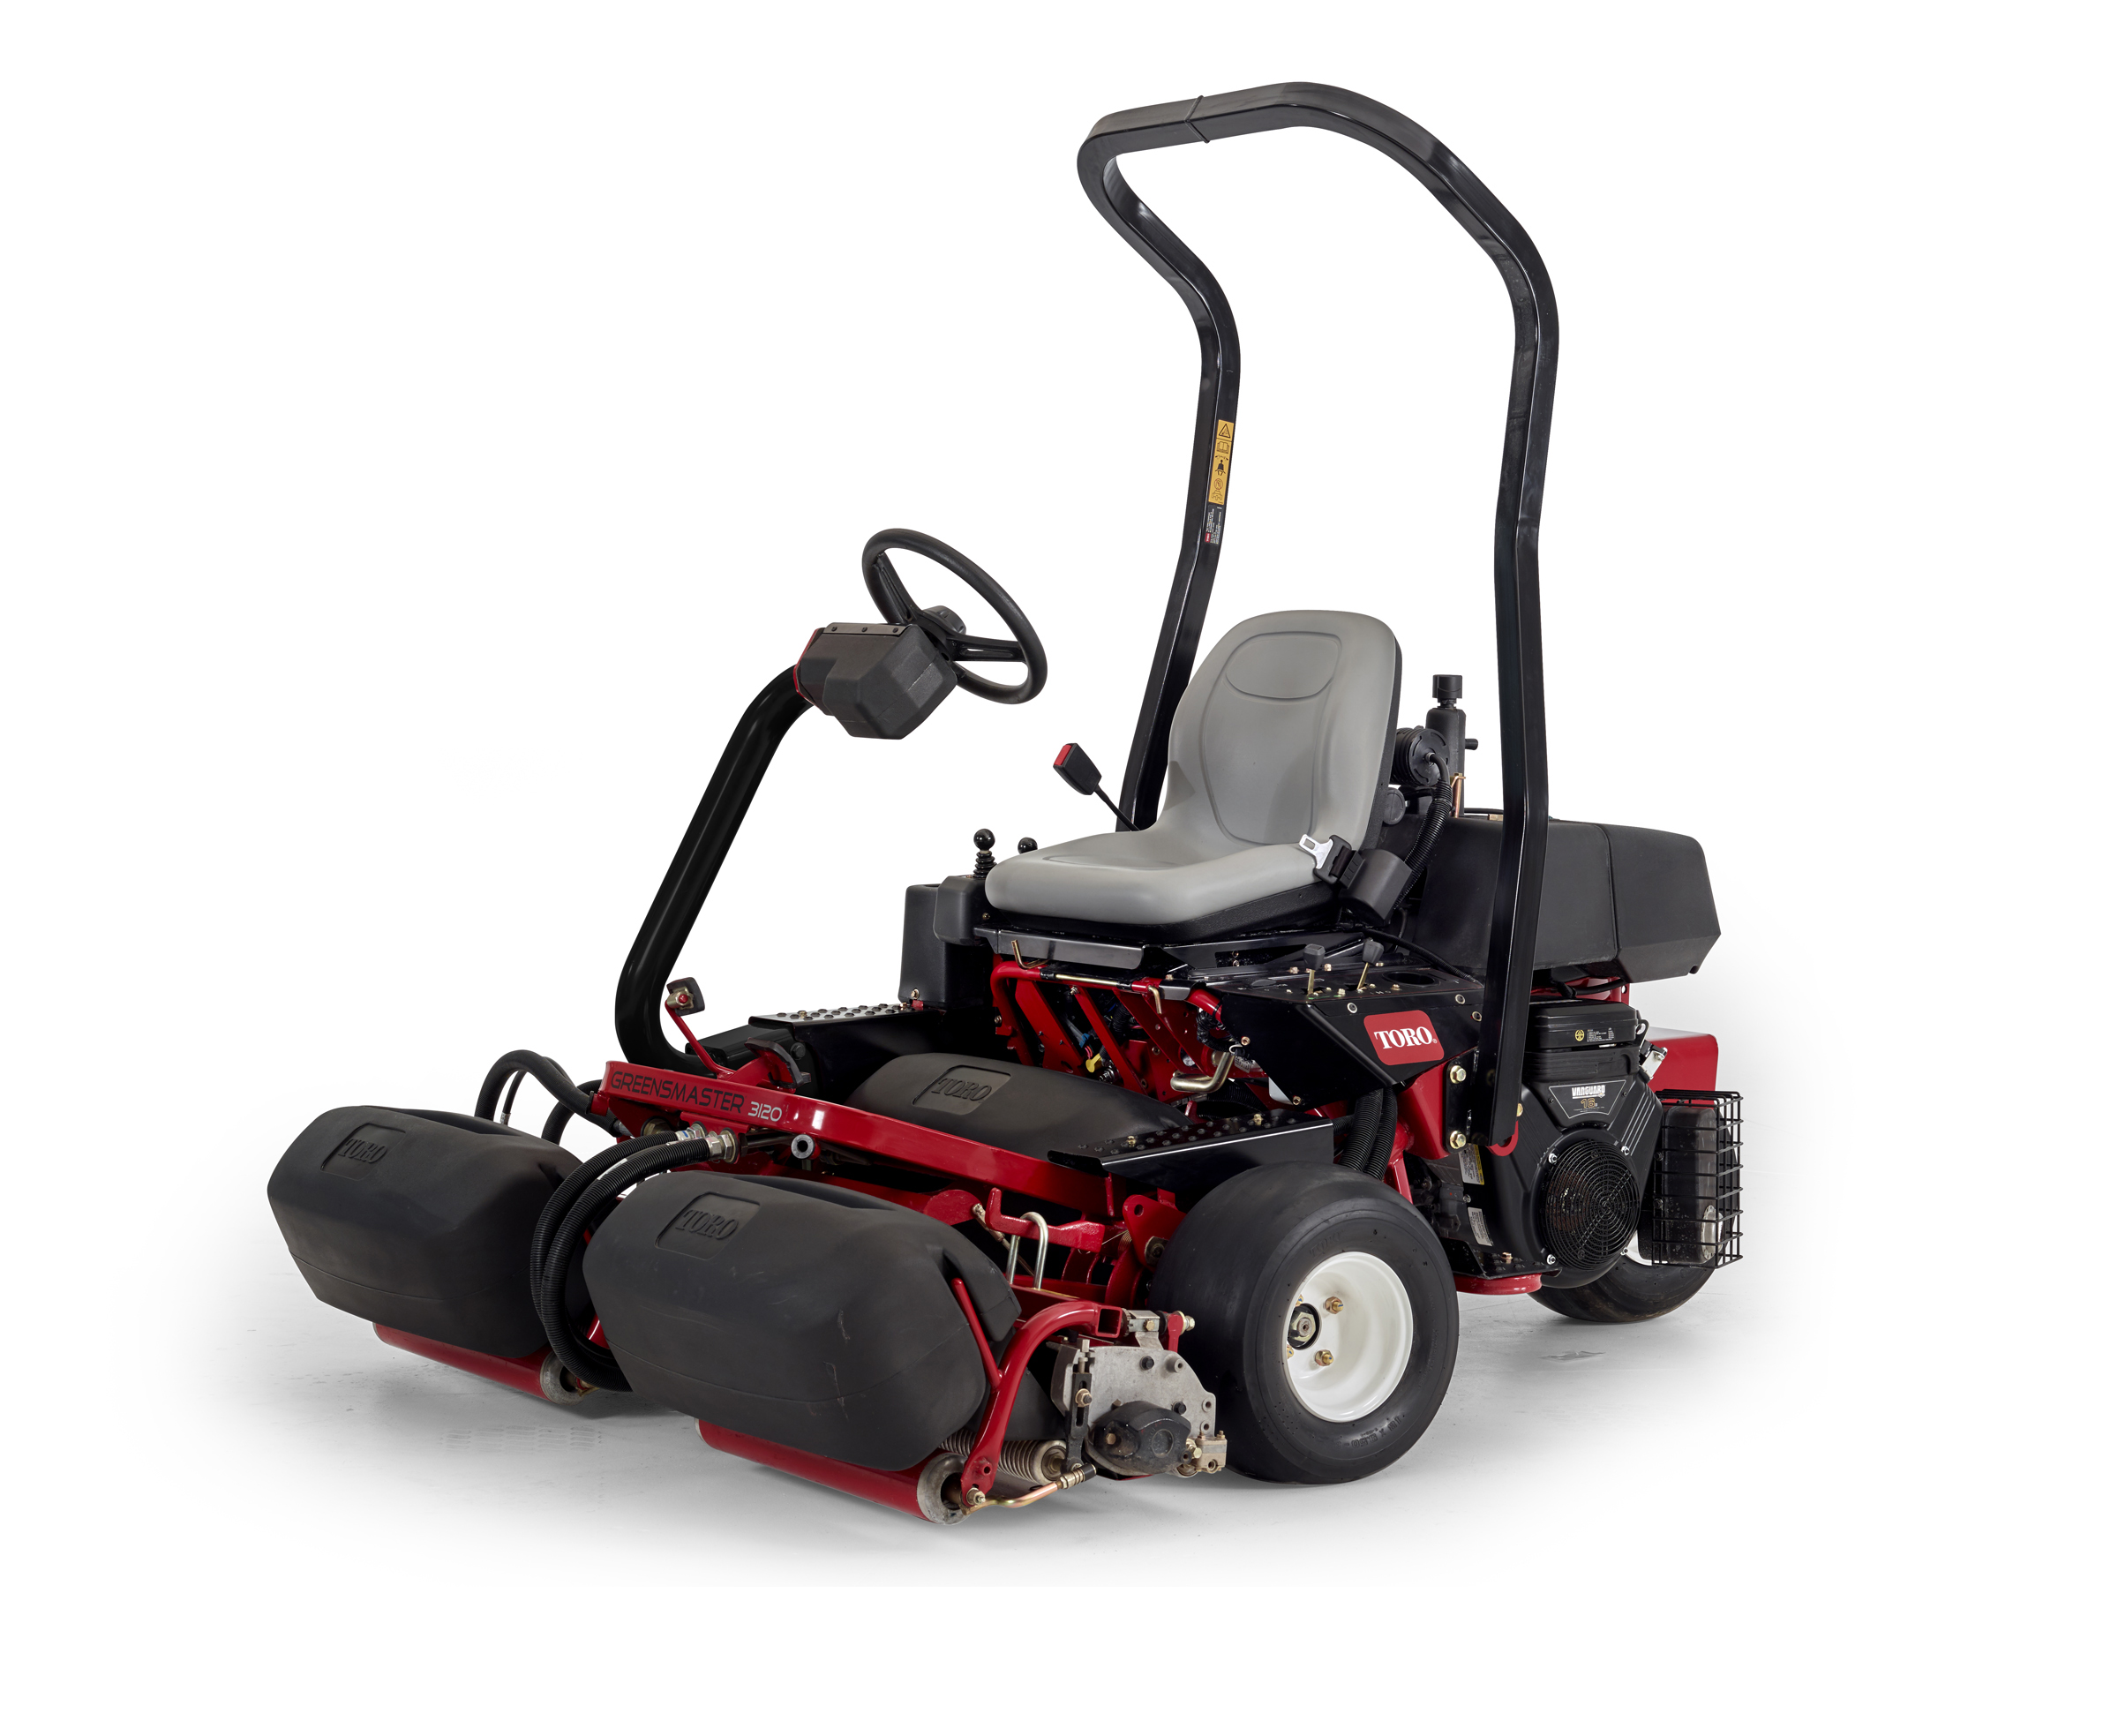 Lawn World Toro Introduces New Greensmaster 3120 Riding